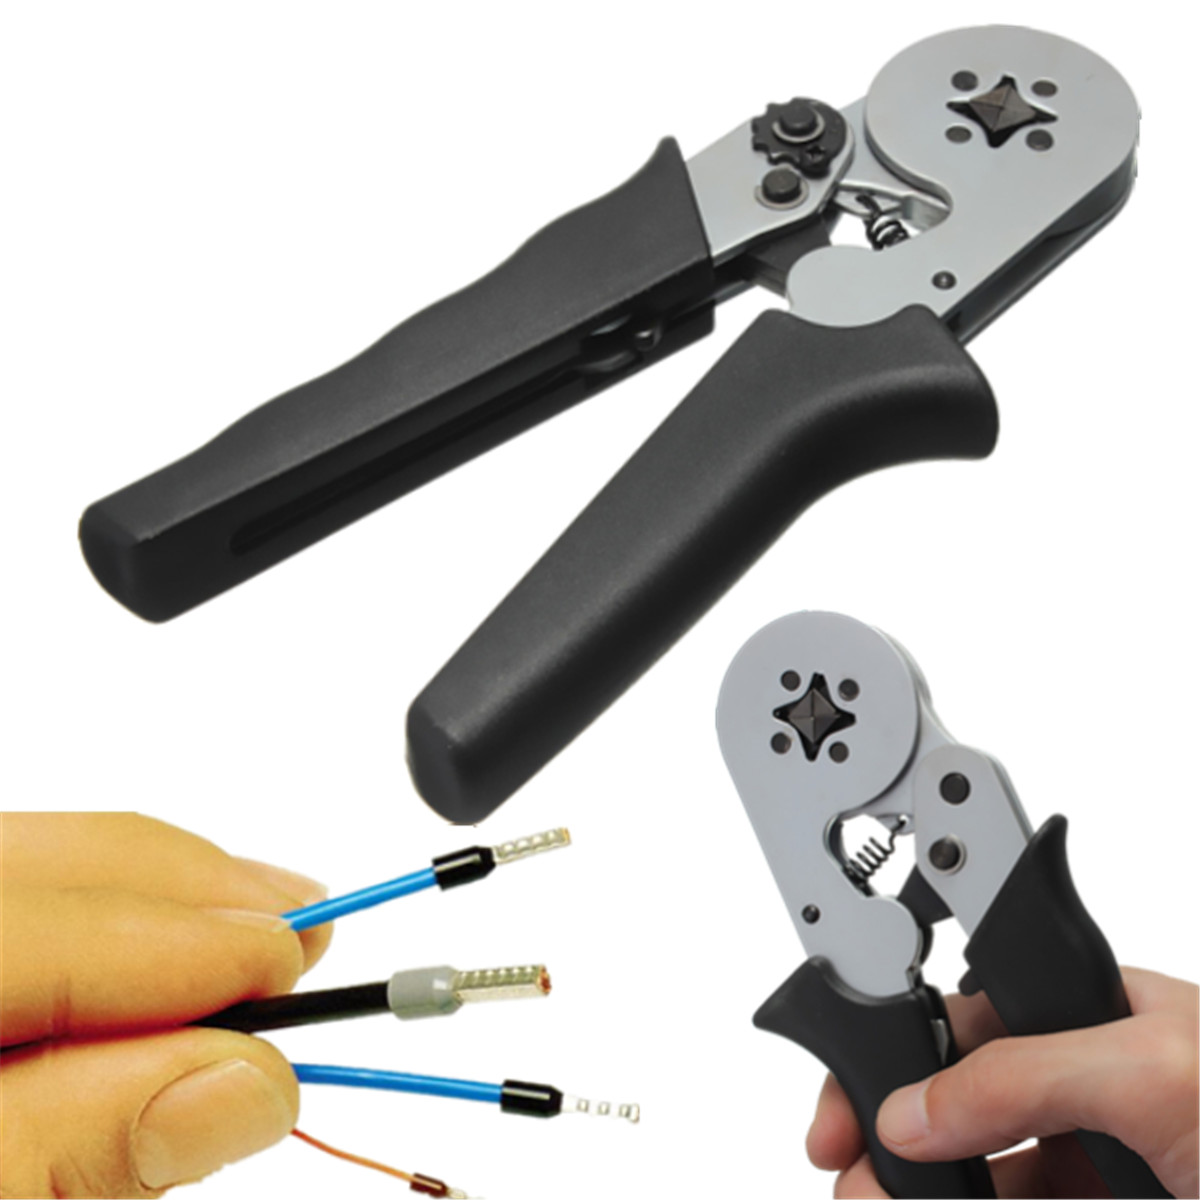 terminal crimping tool bootlace ferrule crimper cord wire end sleeves ebay. Black Bedroom Furniture Sets. Home Design Ideas